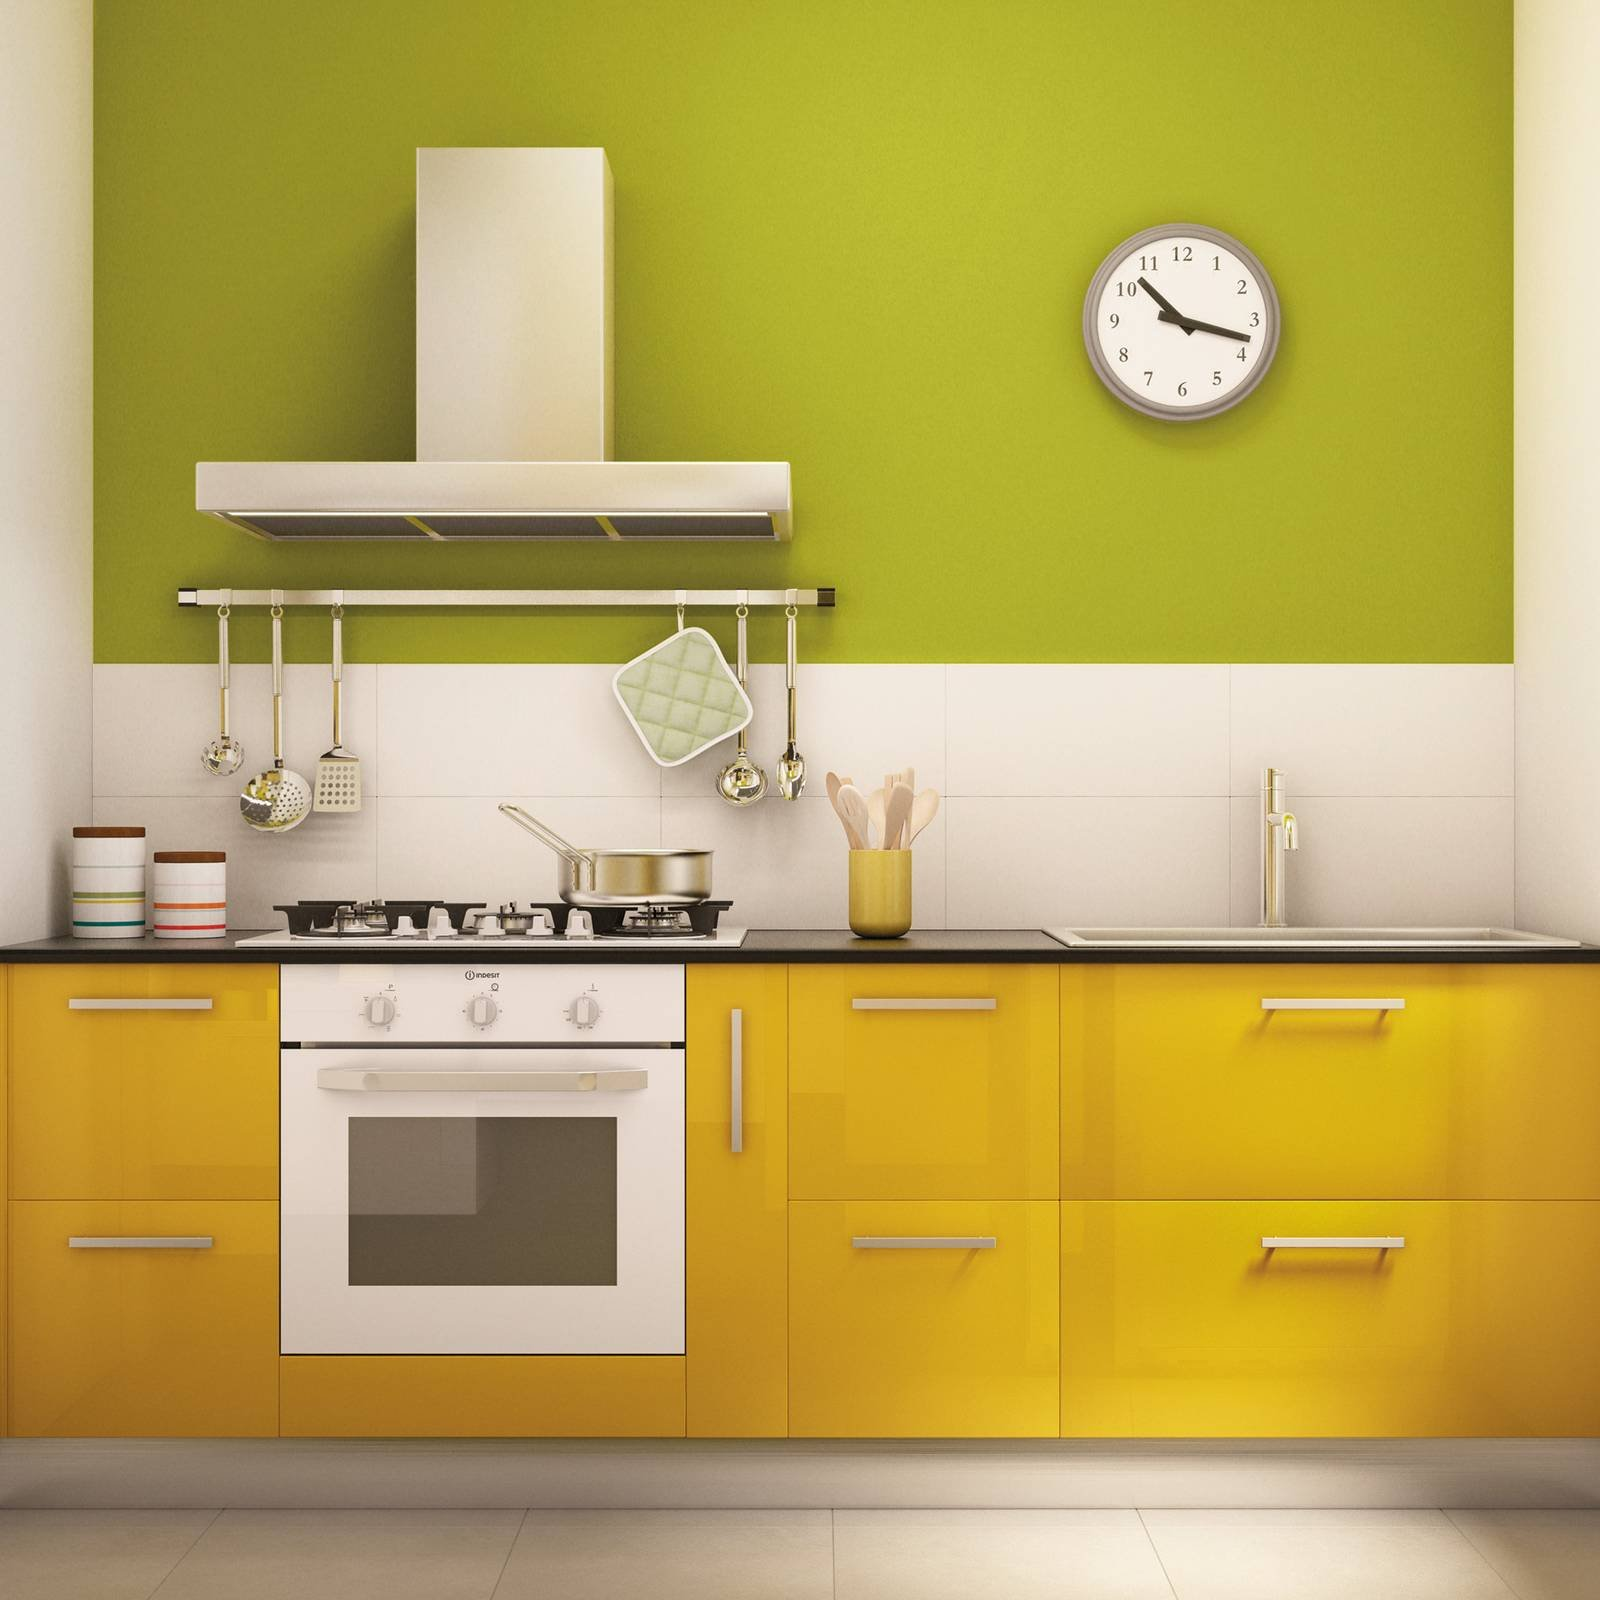 Leroy merlin cucine componibili yk21 pineglen for Cucine componibili colorate